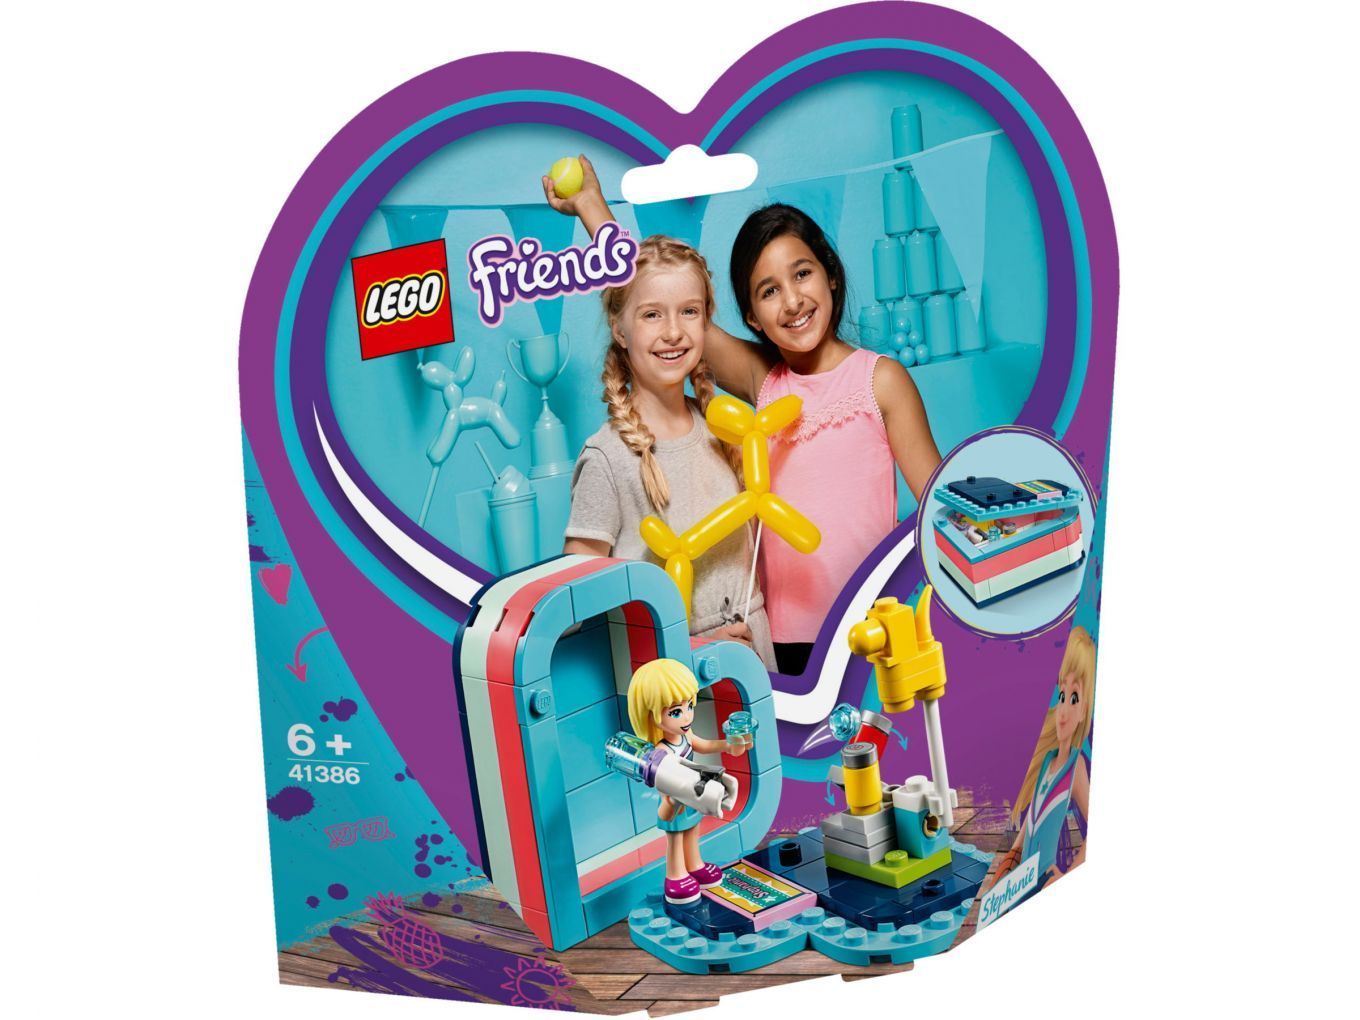 lego-friends-stephanies-herzbox-41386-box-2019 zusammengebaut.com